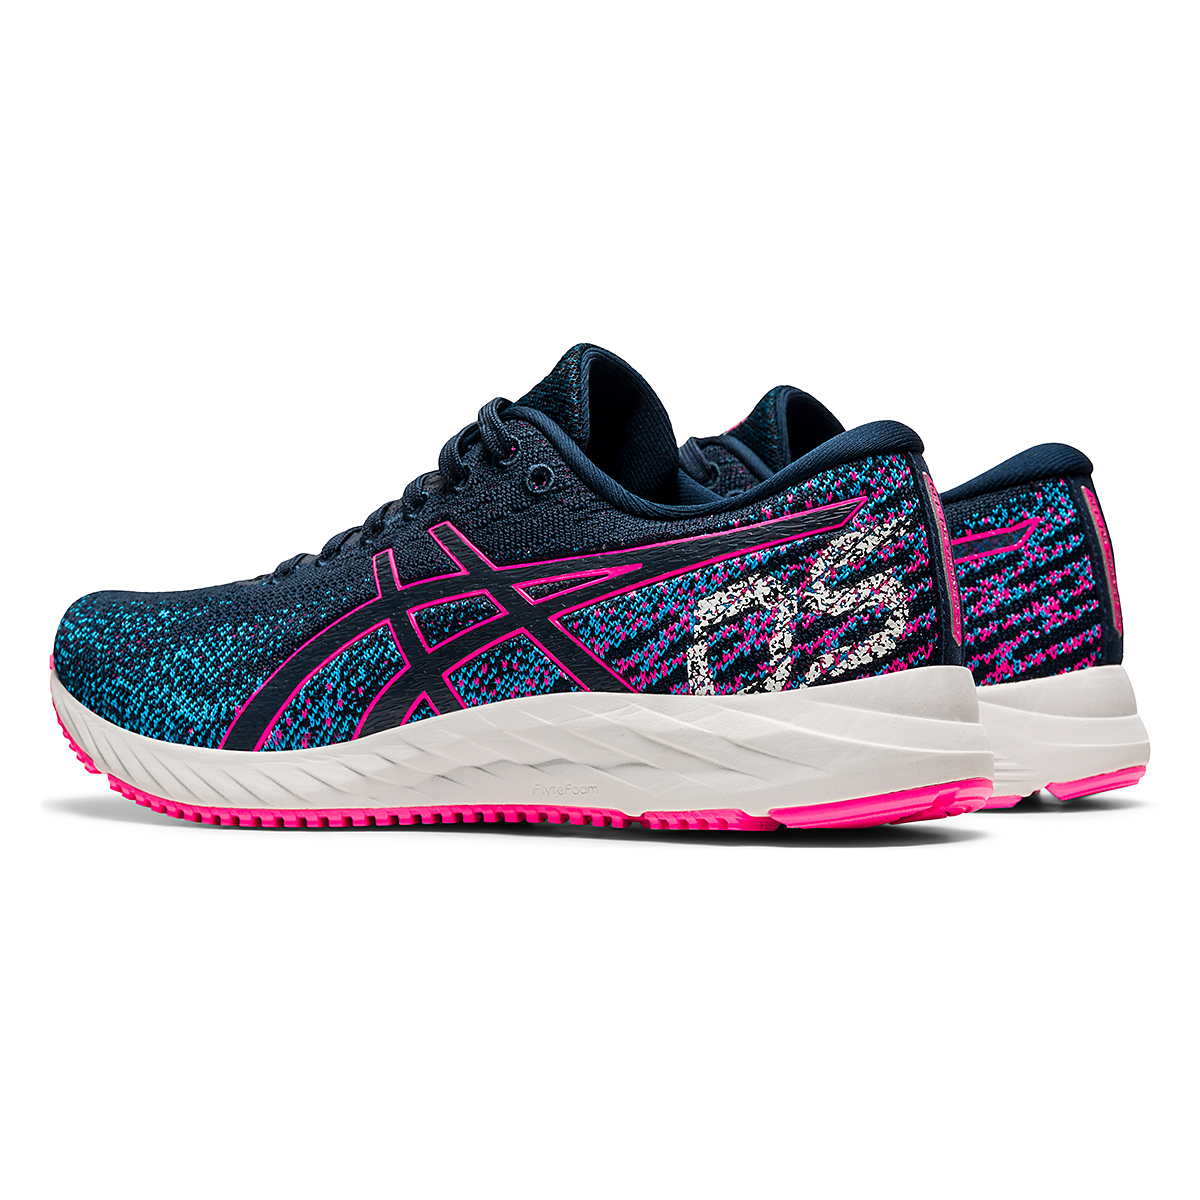 Women's Asics Gel-DS Trainer 26 Running Shoe - Color: French Blue/Hot Pink - Size: 5 - Width: Regular, French Blue/Hot Pink, large, image 4